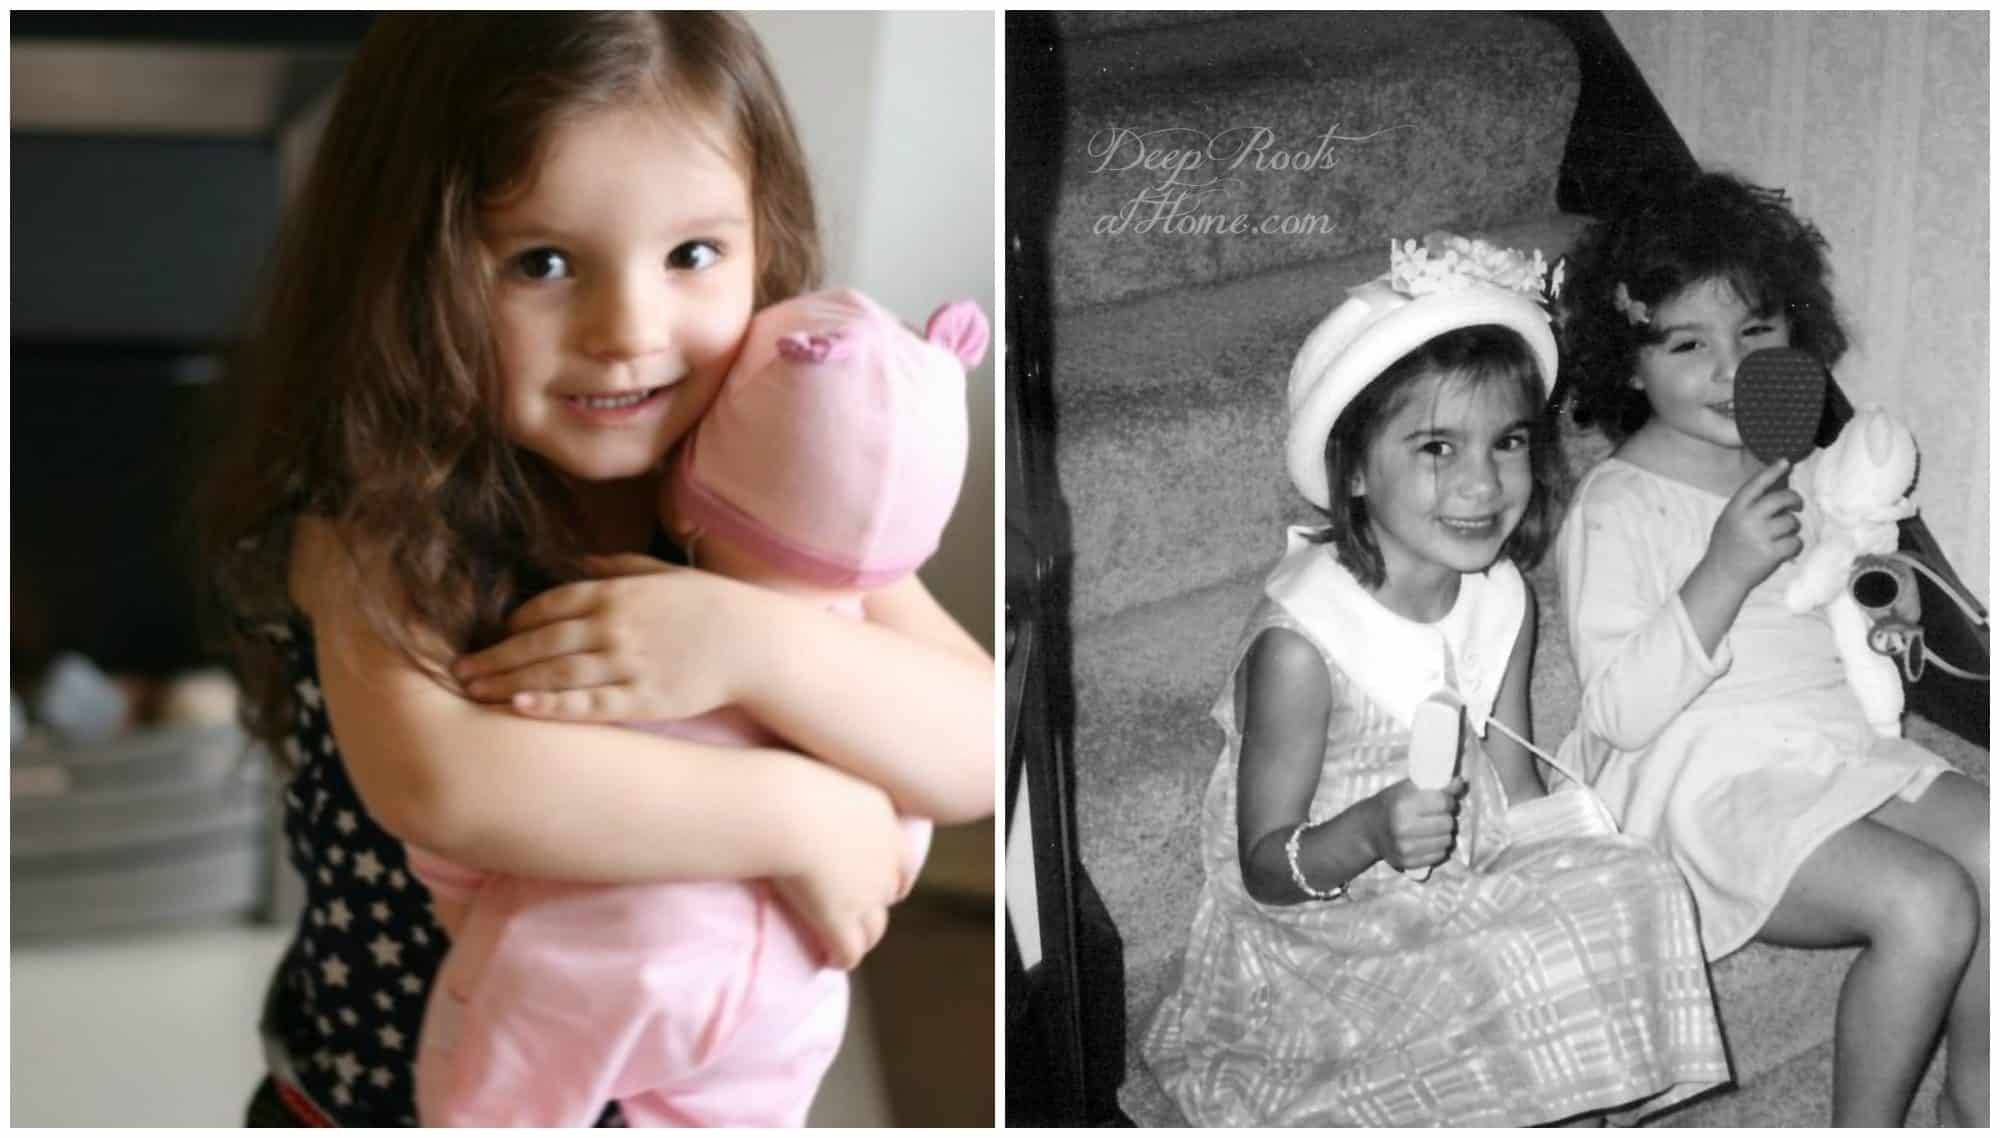 A little girl with baby doll and Two 6 year old girls playing dress-up